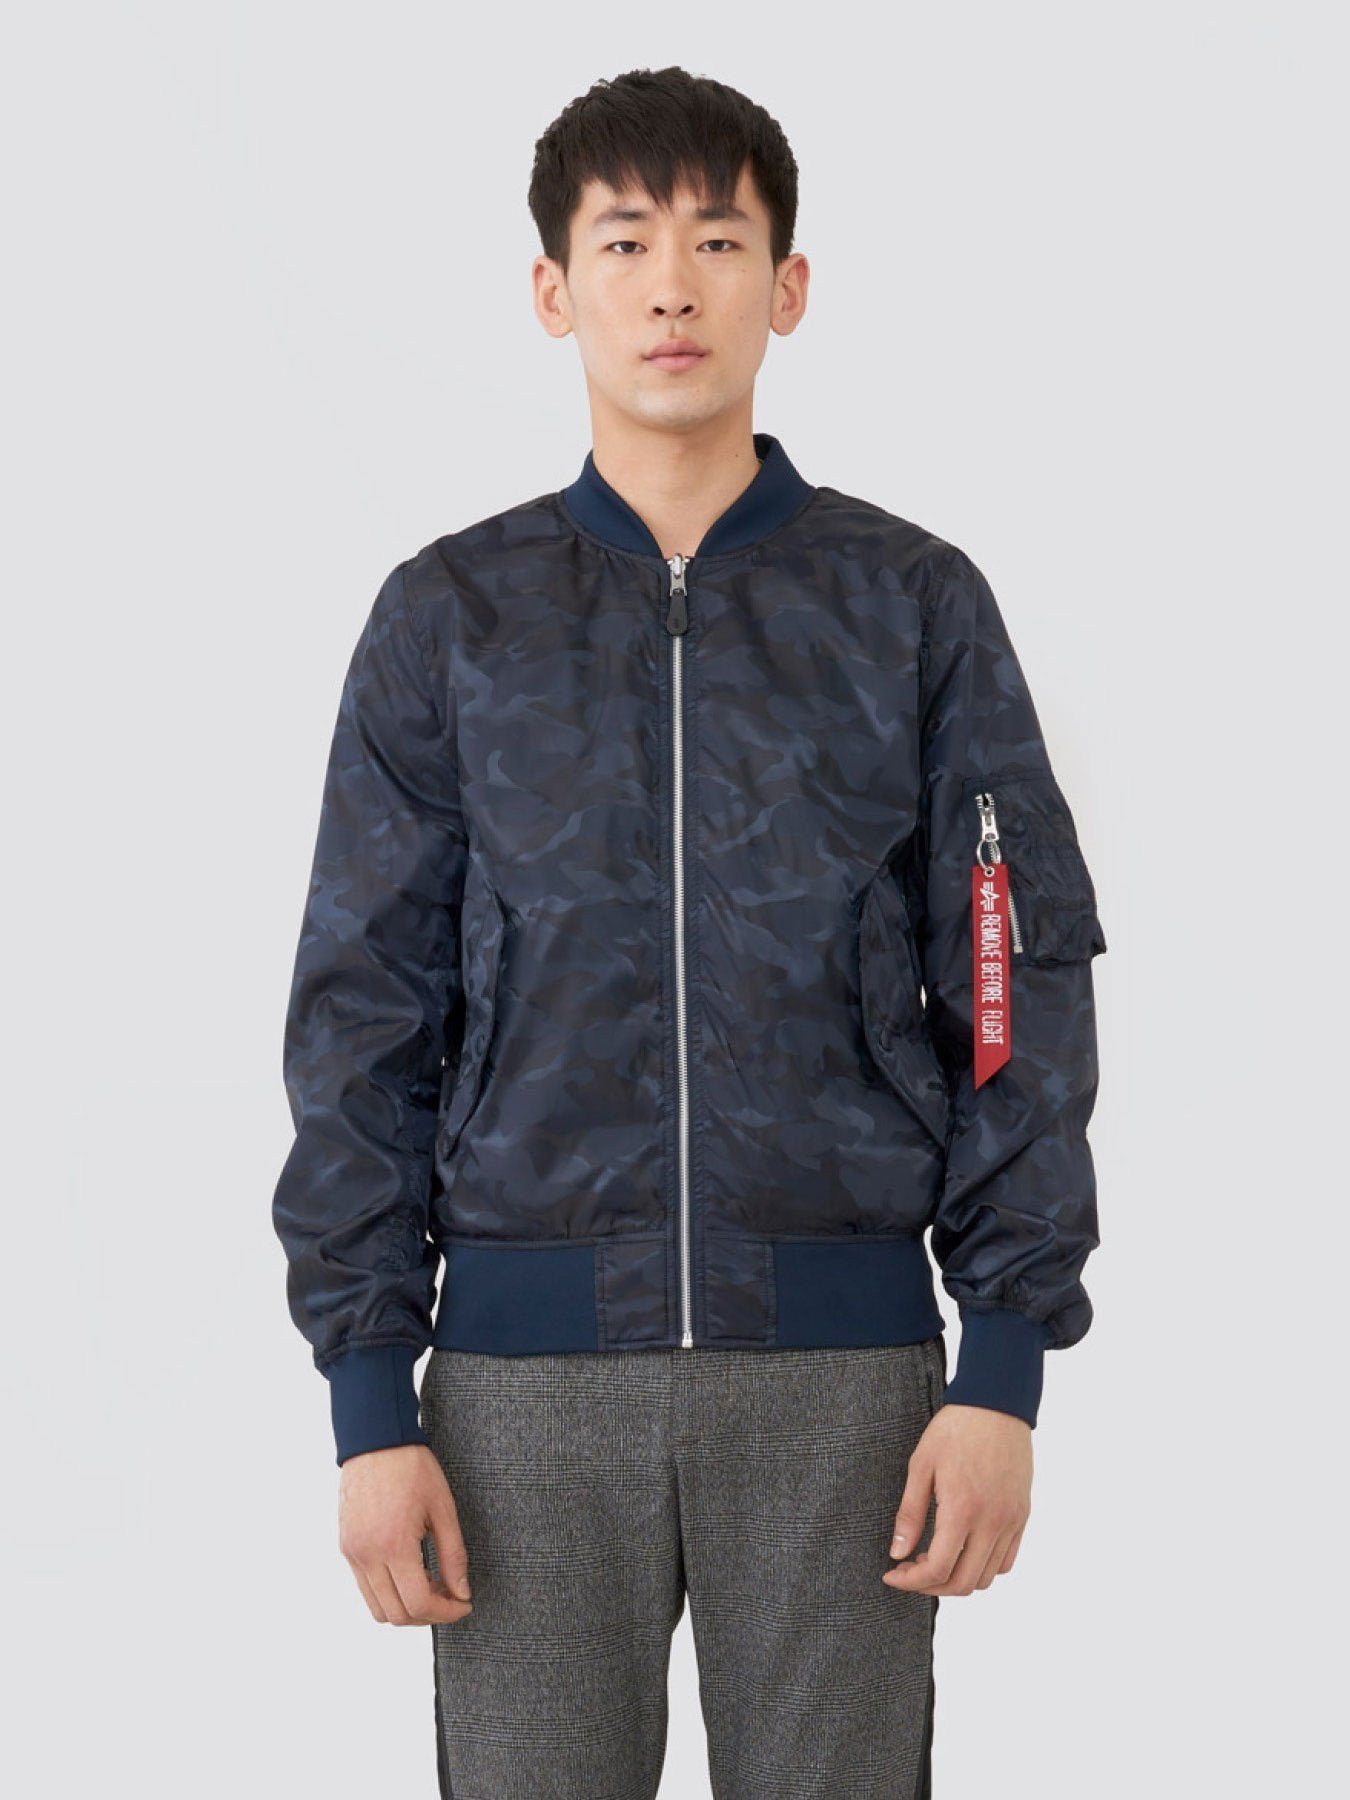 L-2B SCOUT L.O. CAMO FLIGHT JACKET SALE Alpha Industries BLUE CAMO 2XL